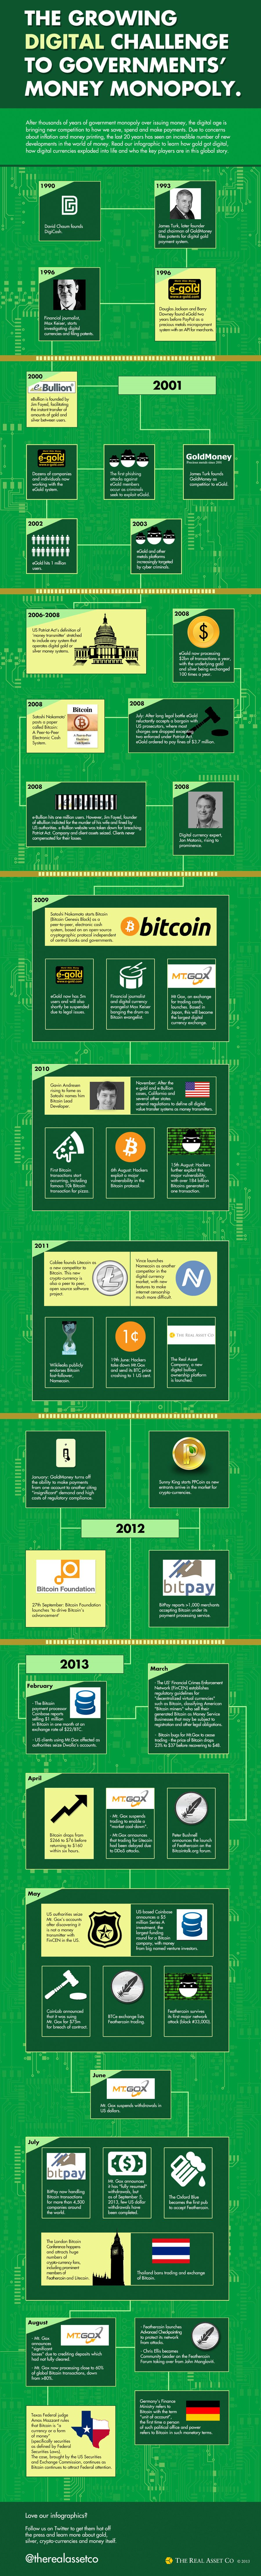 the growing digital challenge to government money infographic